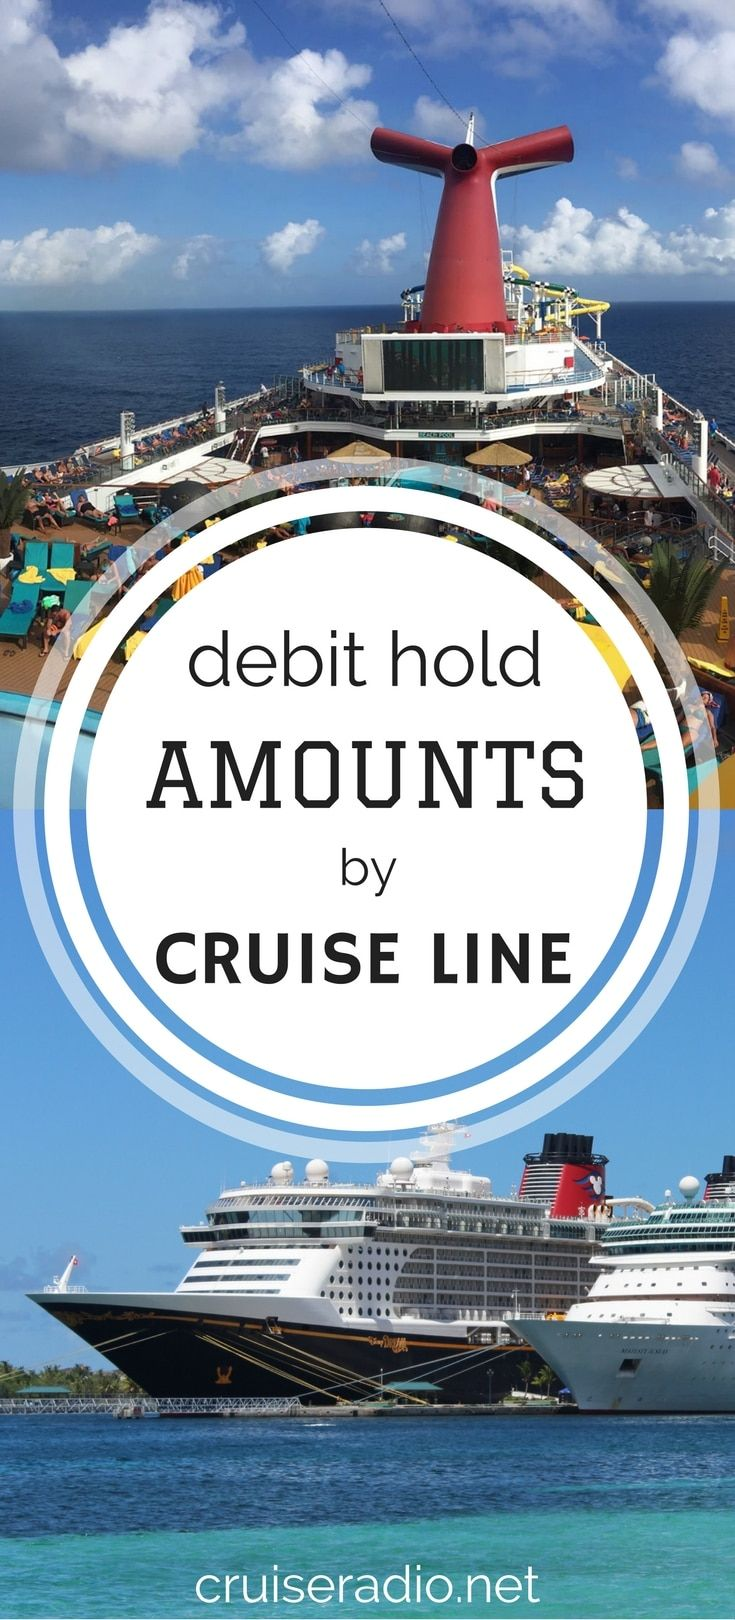 #debit #creditcard #cruise #traveltips #cruisetips #travel #vacation #ship